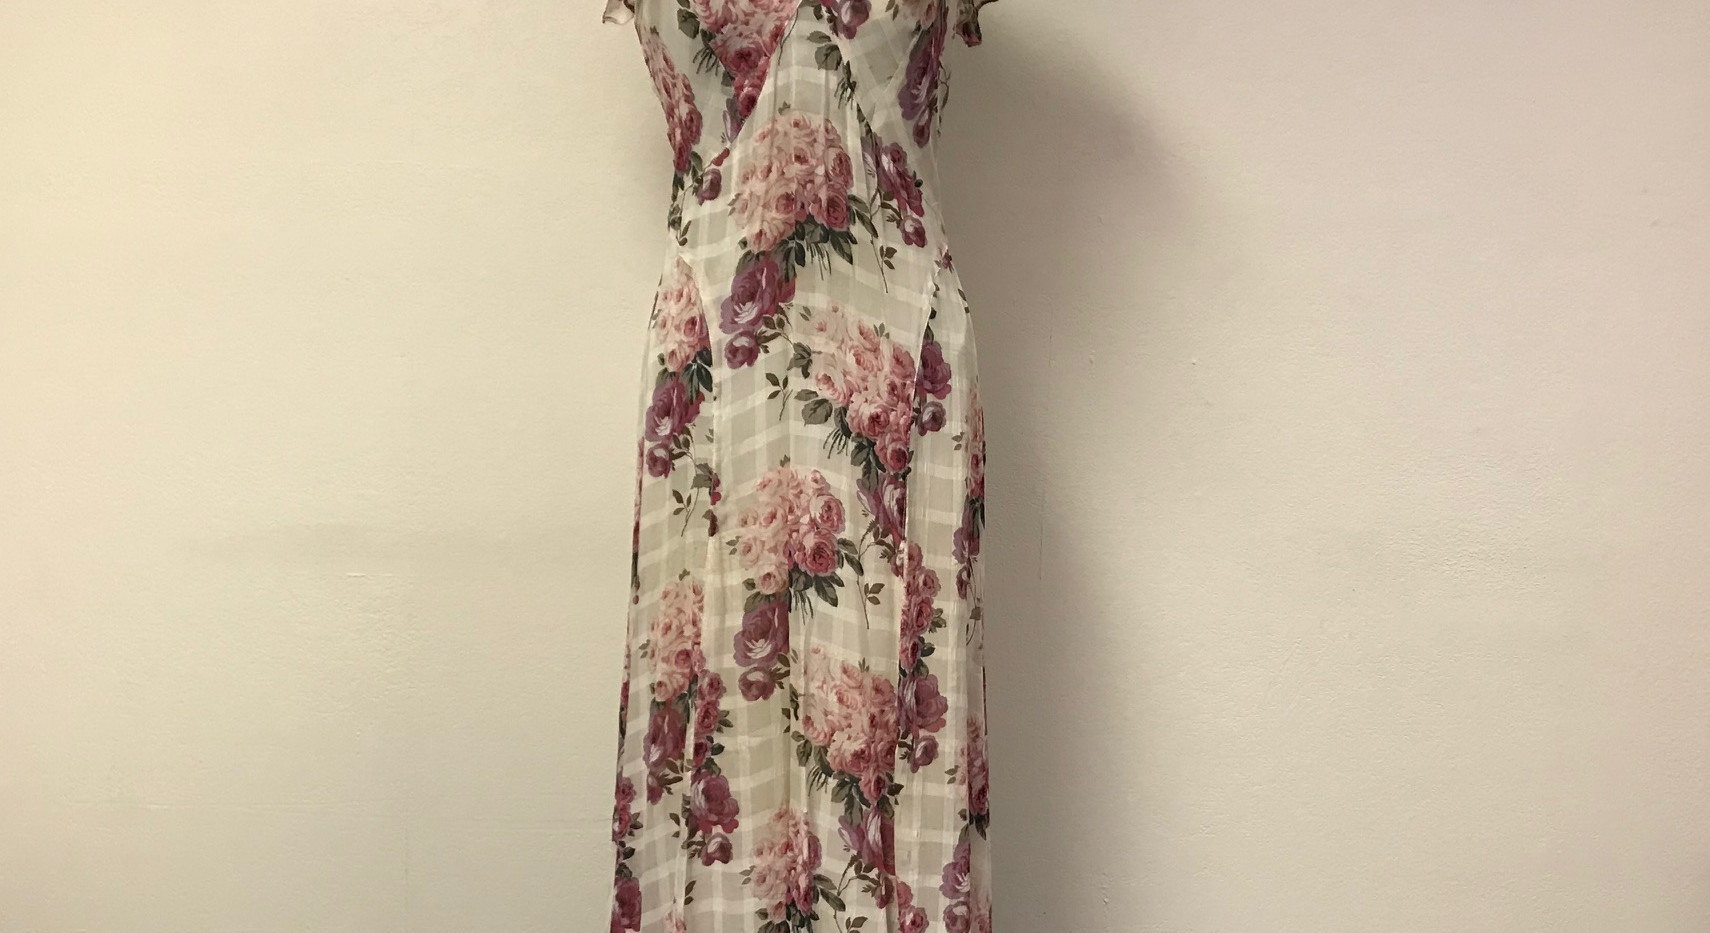 Floral Chiffon 1930's Dress